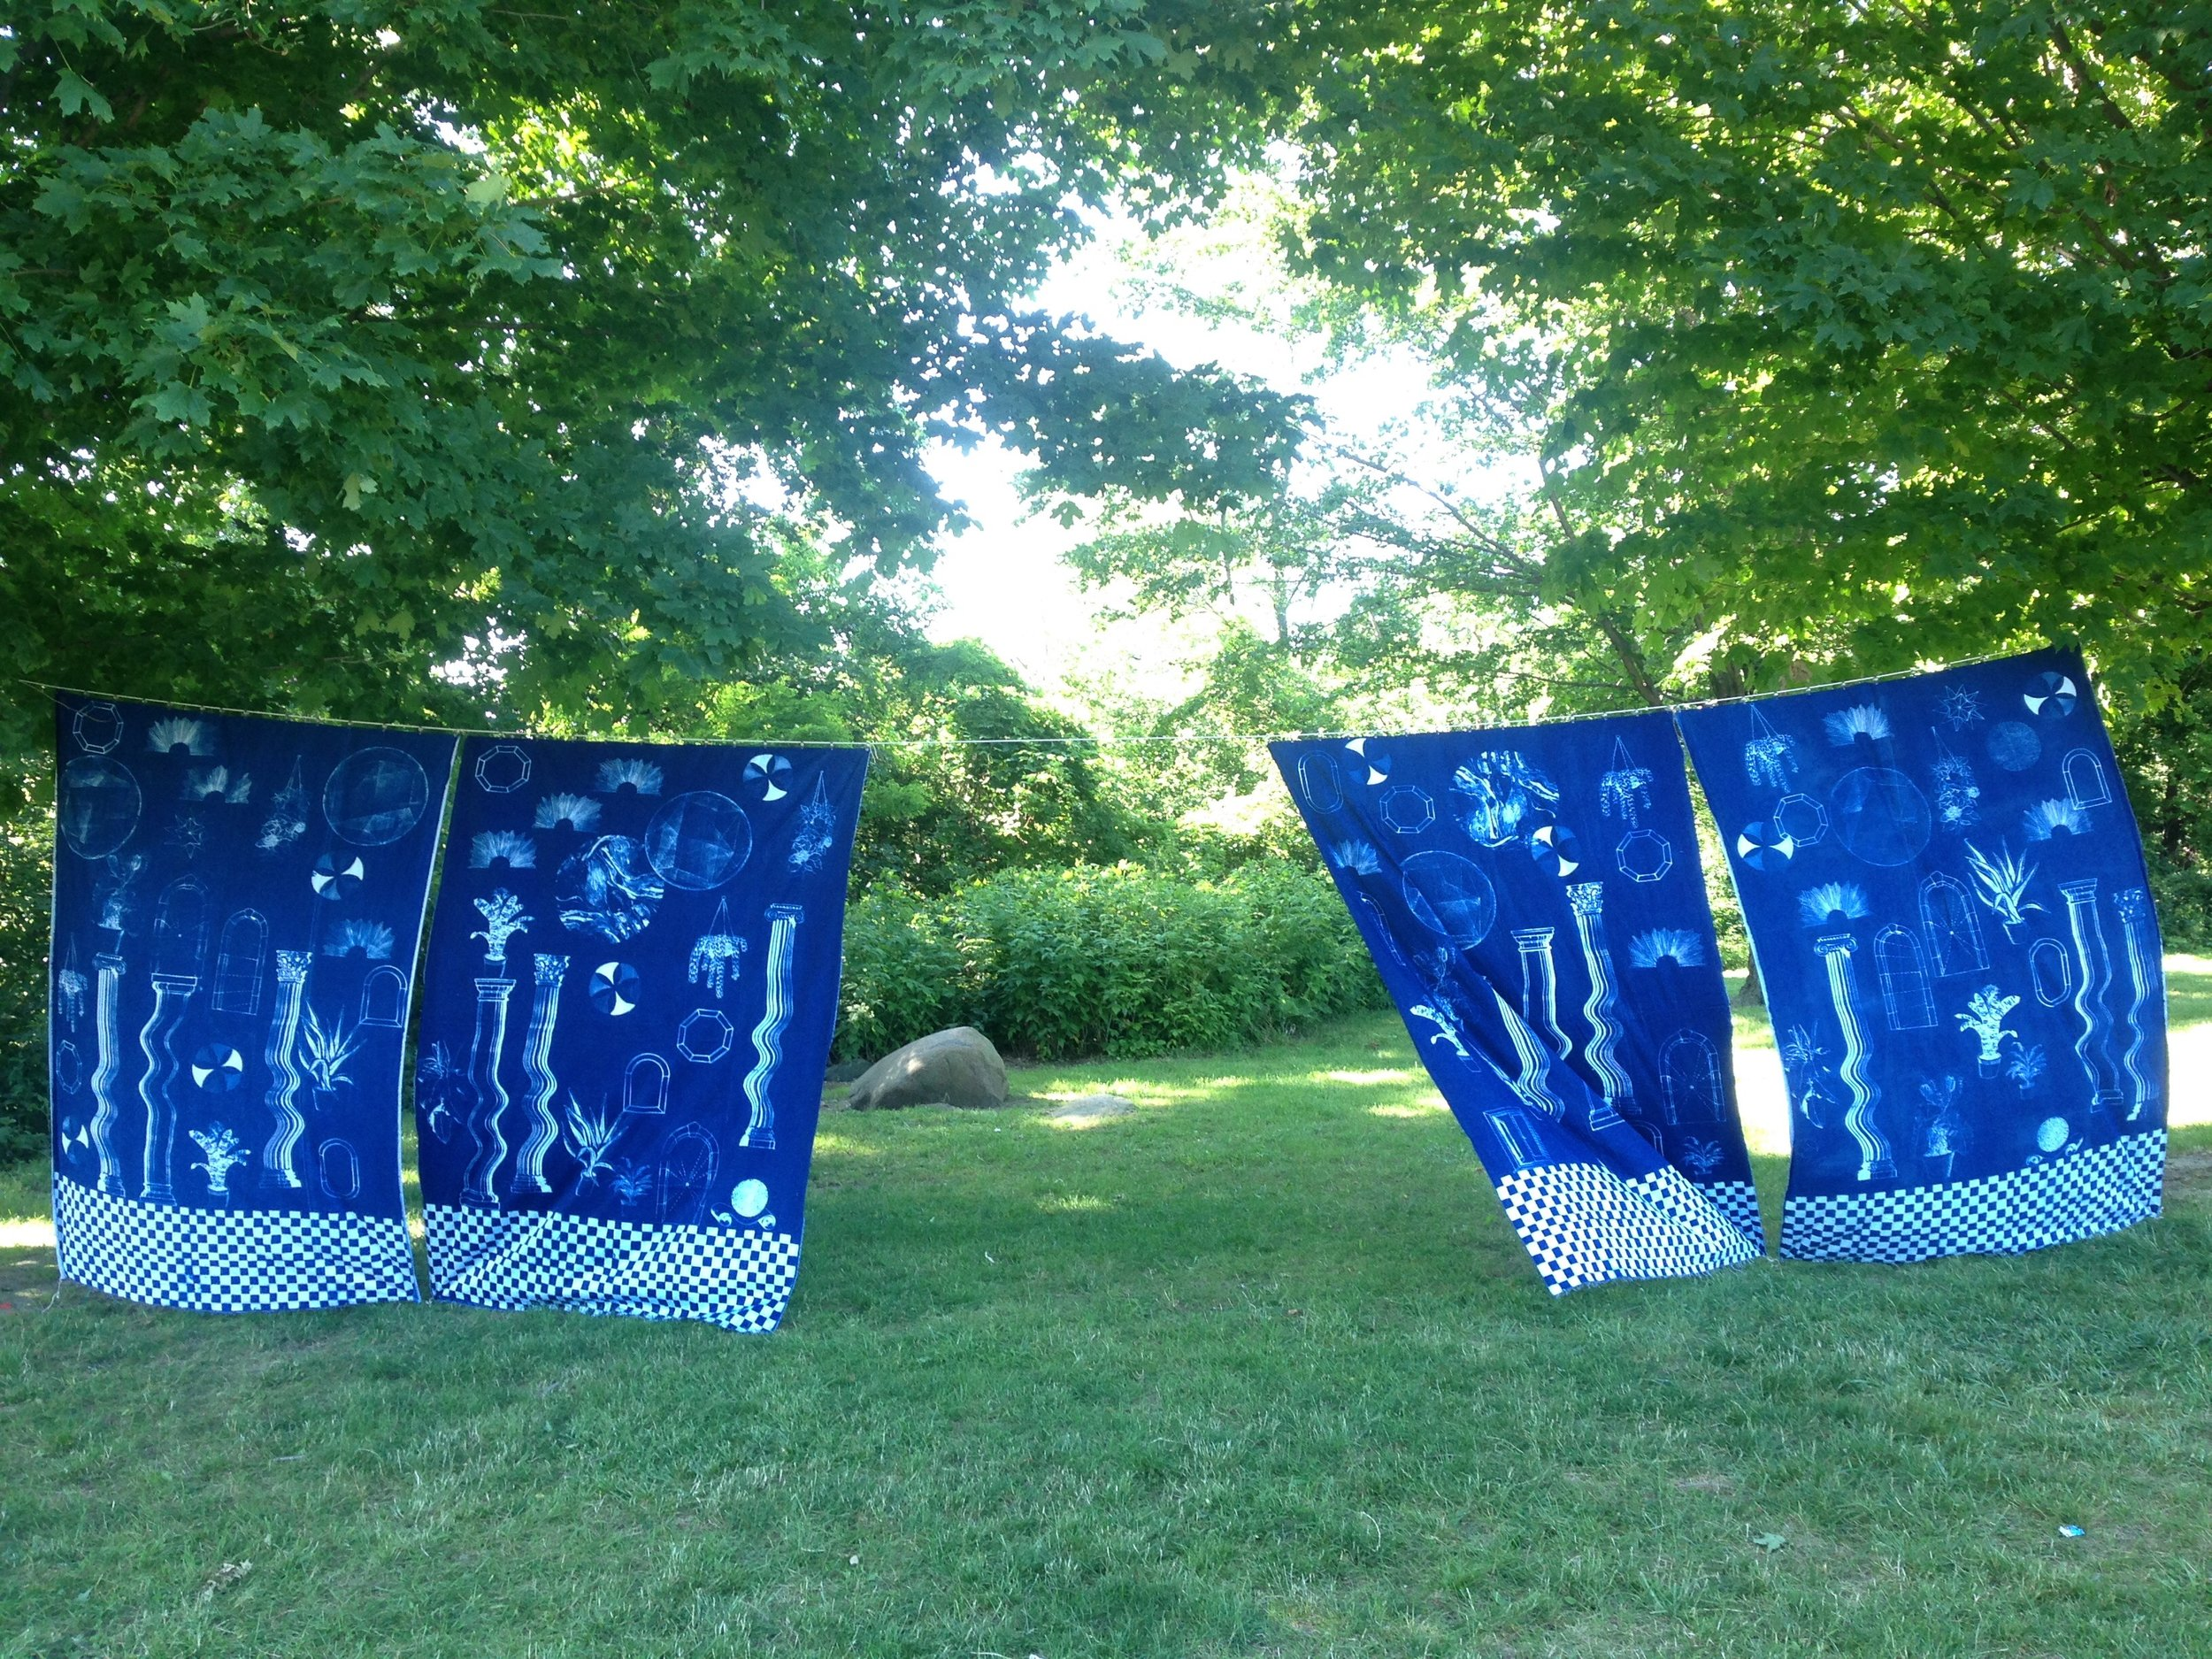 a place halfway between both worlds where anyting can happen and there is no problem with time  Cyanotype sun printed curtains, each 5' x 7'  Feast in the East, Praire Drive park, Scarborough   2017